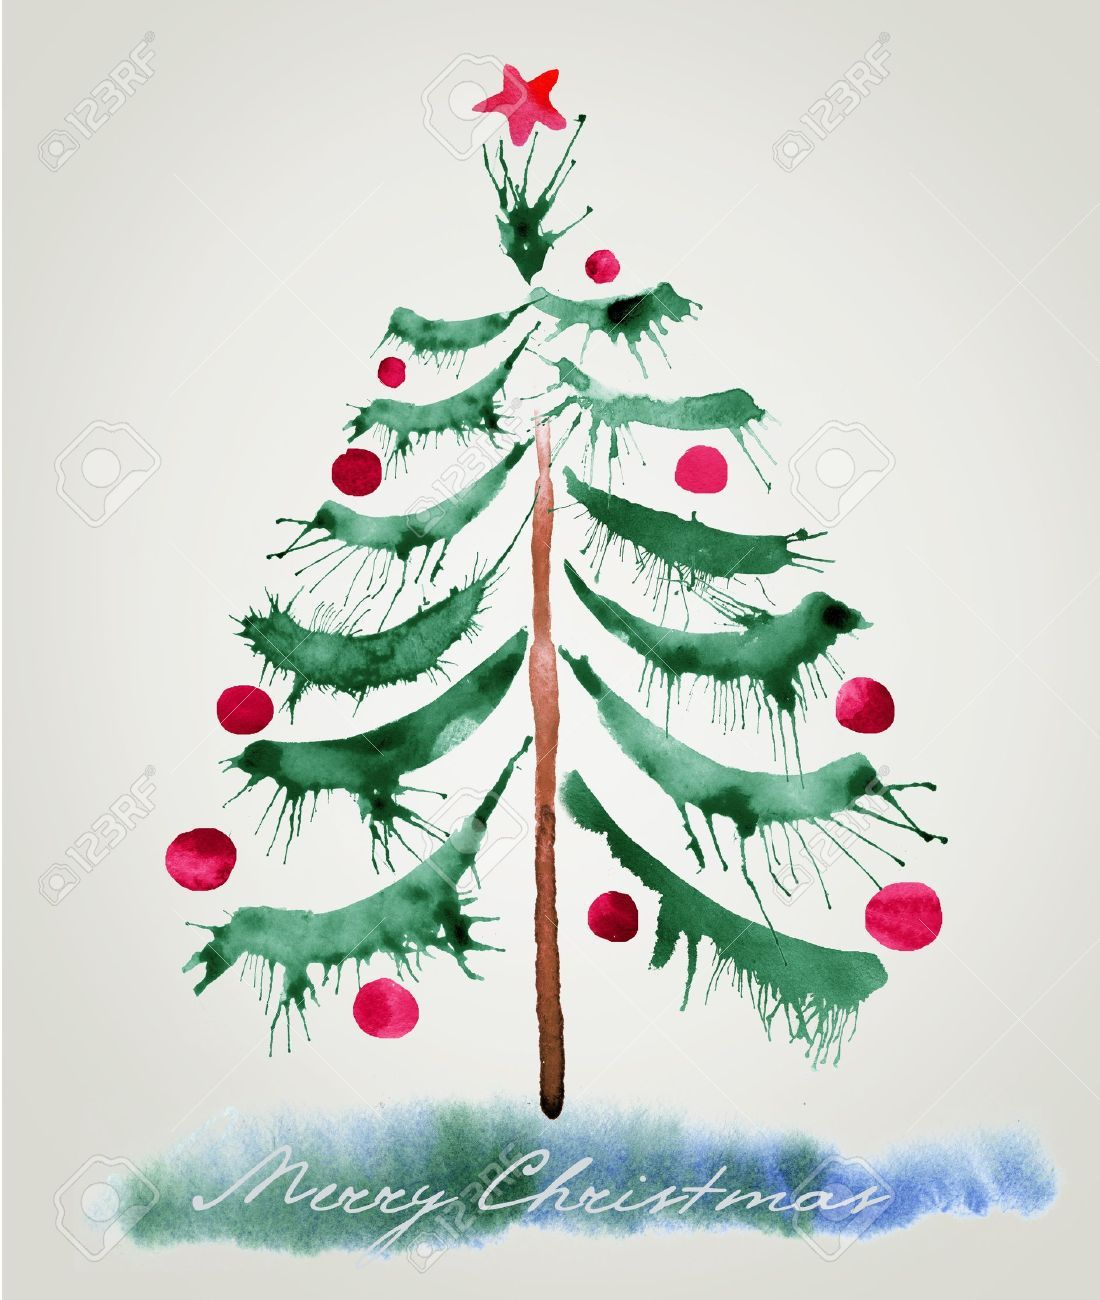 Christmas Tree Watercolor Cute Idea Paint Wet Swipes Of Green And Then Blow On It With A Plastic Straw